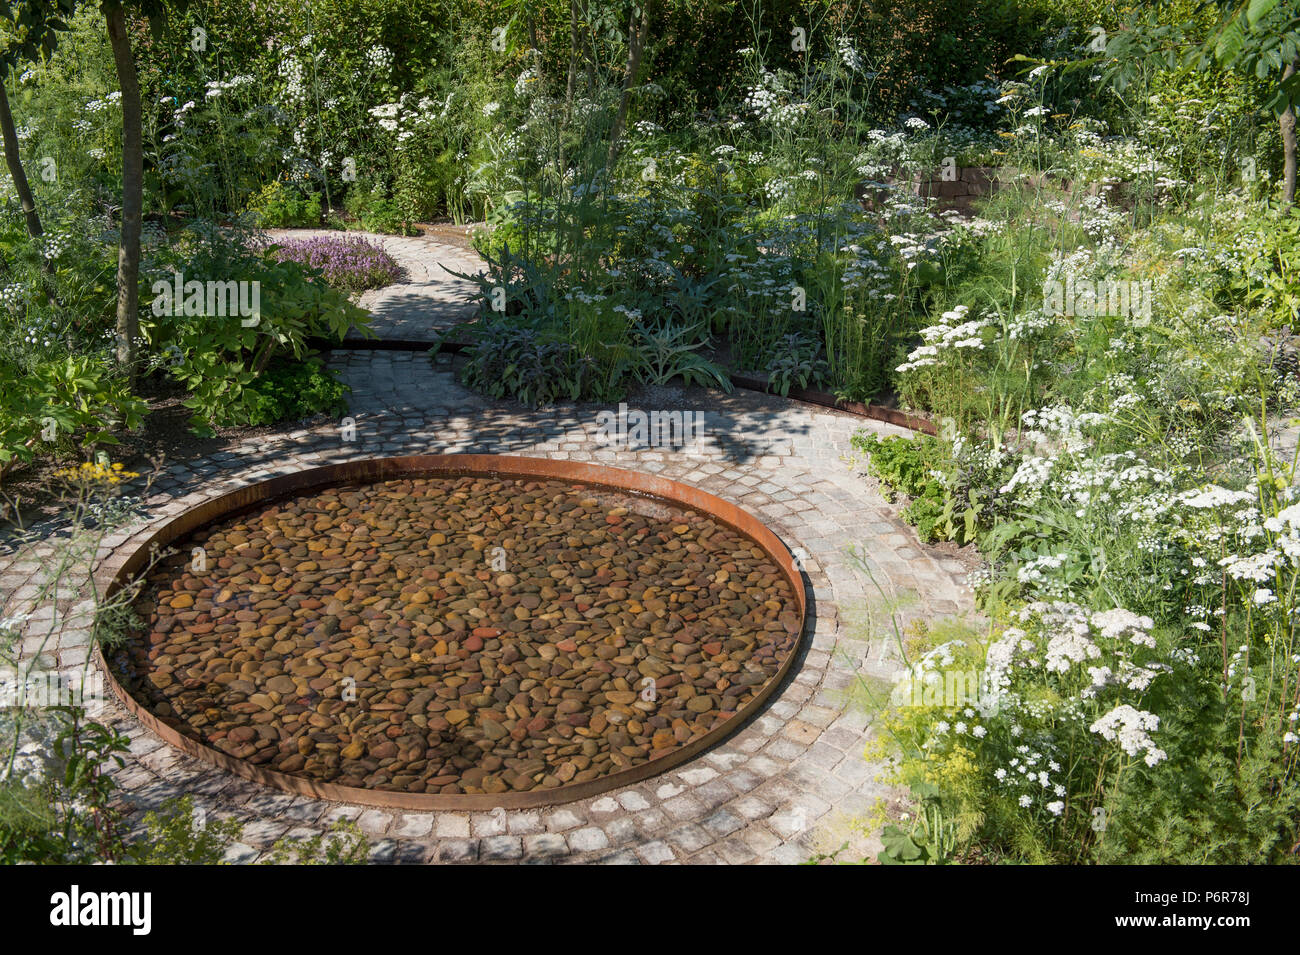 Hampton Court Palace, Surrey, UK. 2 July, 2018. The world's largest annual flower show, RHS Hampton Court Palace Flower Show supported by Viking Cruises, opens to the public from 5 - 8 July 2018. The Health and Wellbeing Garden designed by Alexandra Noble. Credit: Malcolm Park/Alamy Live News. Stock Photo